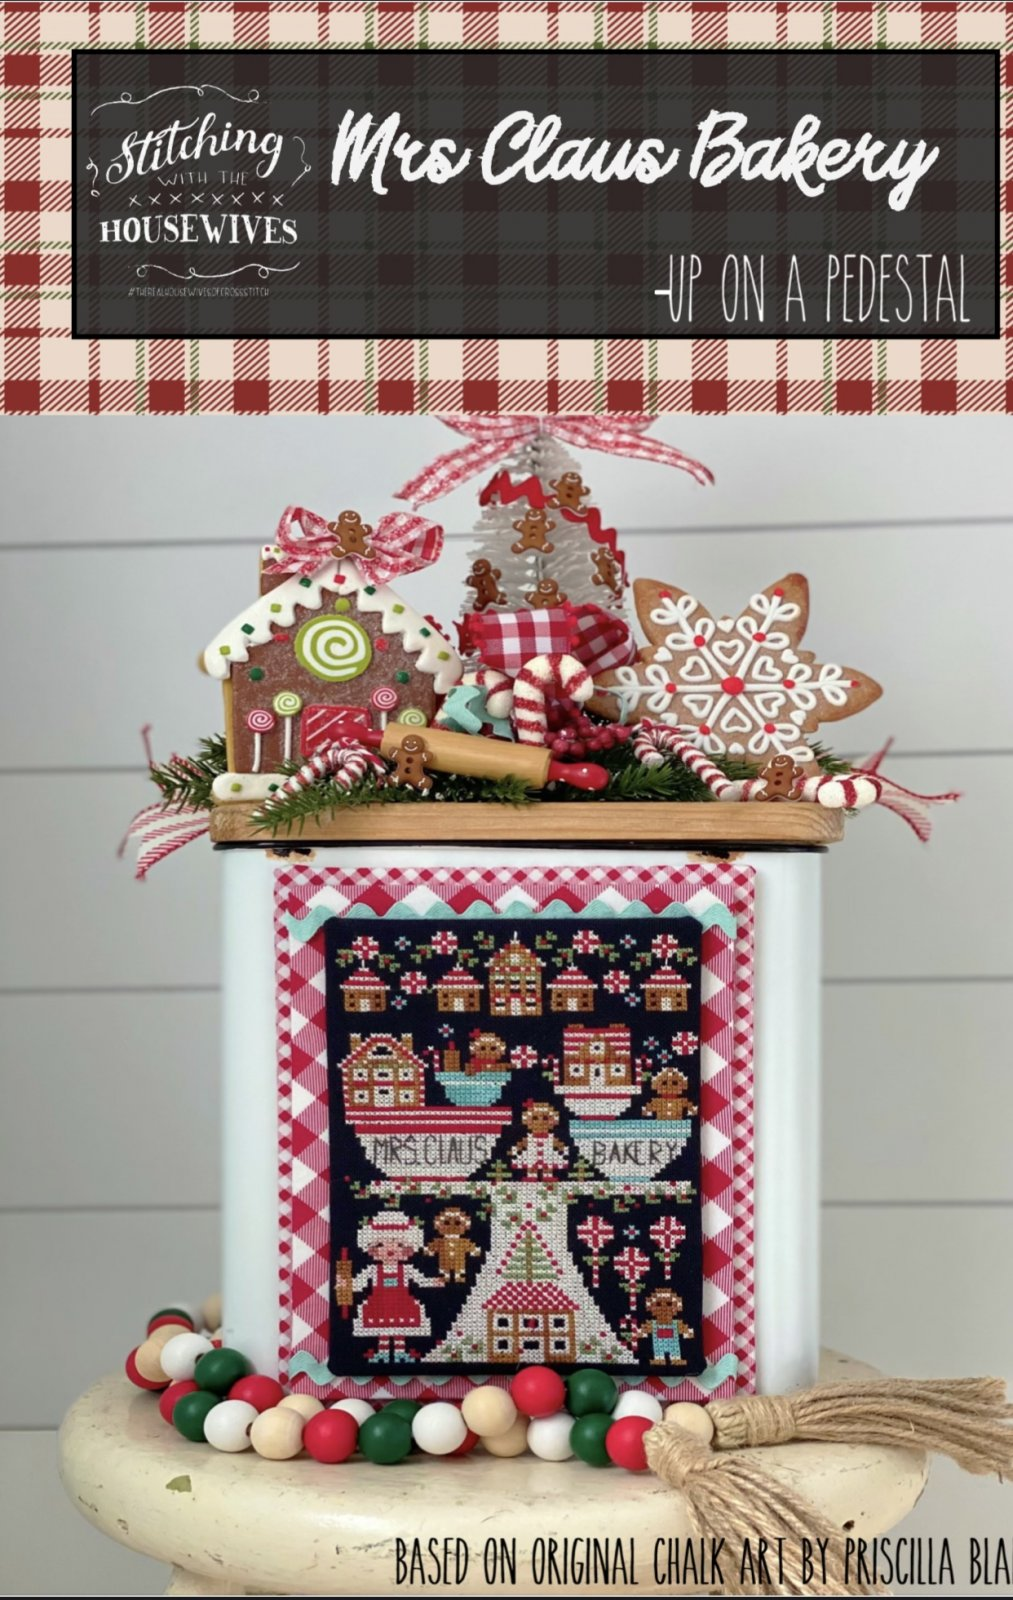 Mrs. Claus Bakery chart - Stitching with the Housewives